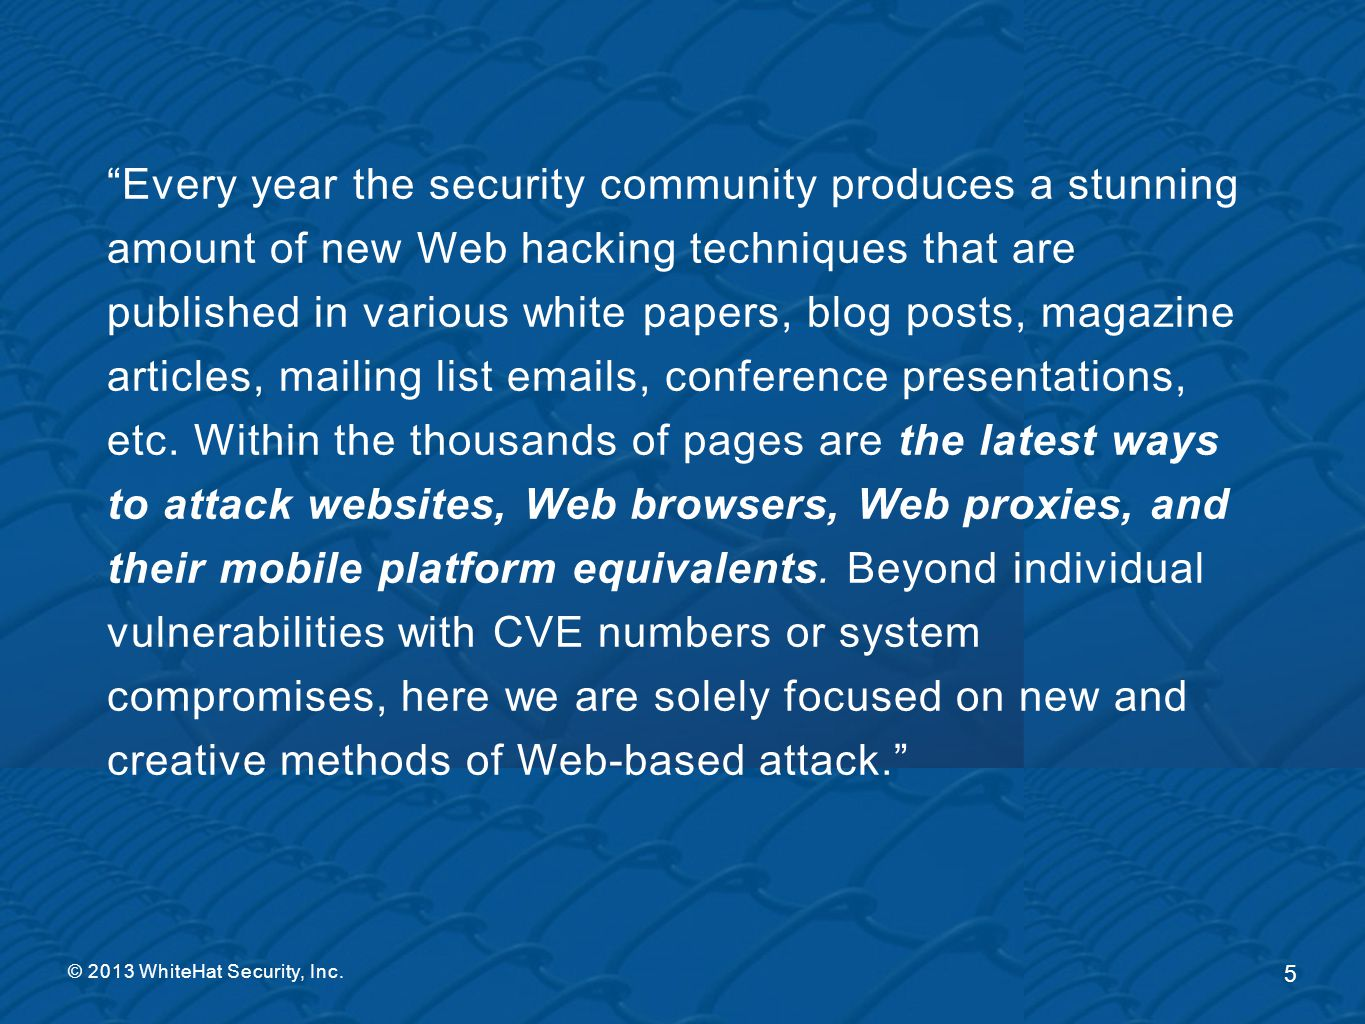 Every year the security community produces a stunning amount of new Web hacking techniques that are published in various white papers, blog posts, magazine articles, mailing list emails, conference presentations, etc. Within the thousands of pages are the latest ways to attack websites, Web browsers, Web proxies, and their mobile platform equivalents. Beyond individual vulnerabilities with CVE numbers or system compromises, here we are solely focused on new and creative methods of Web-based attack.